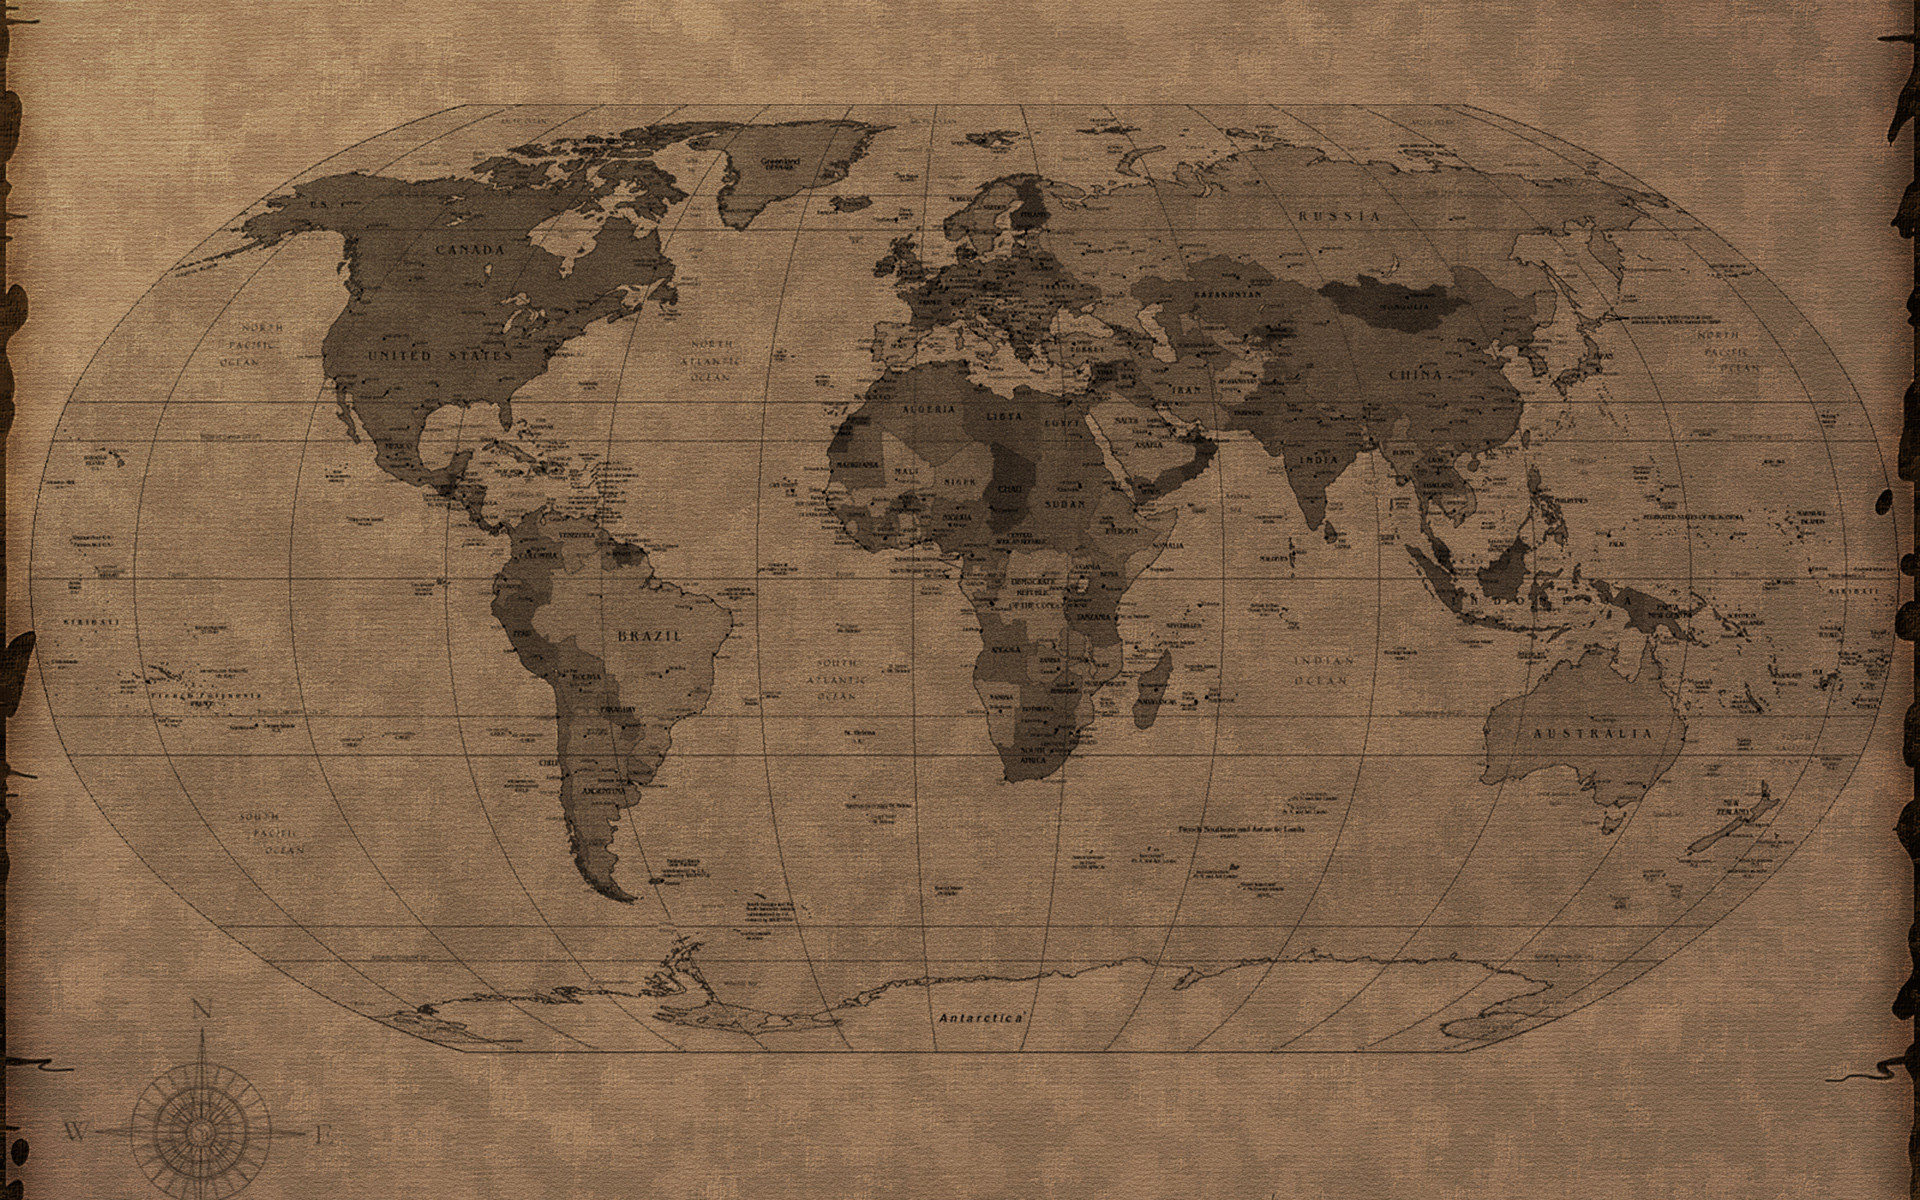 World map computer wallpaper 62 images 1920x1080 map of the world wallpaper for gumiabroncs Choice Image